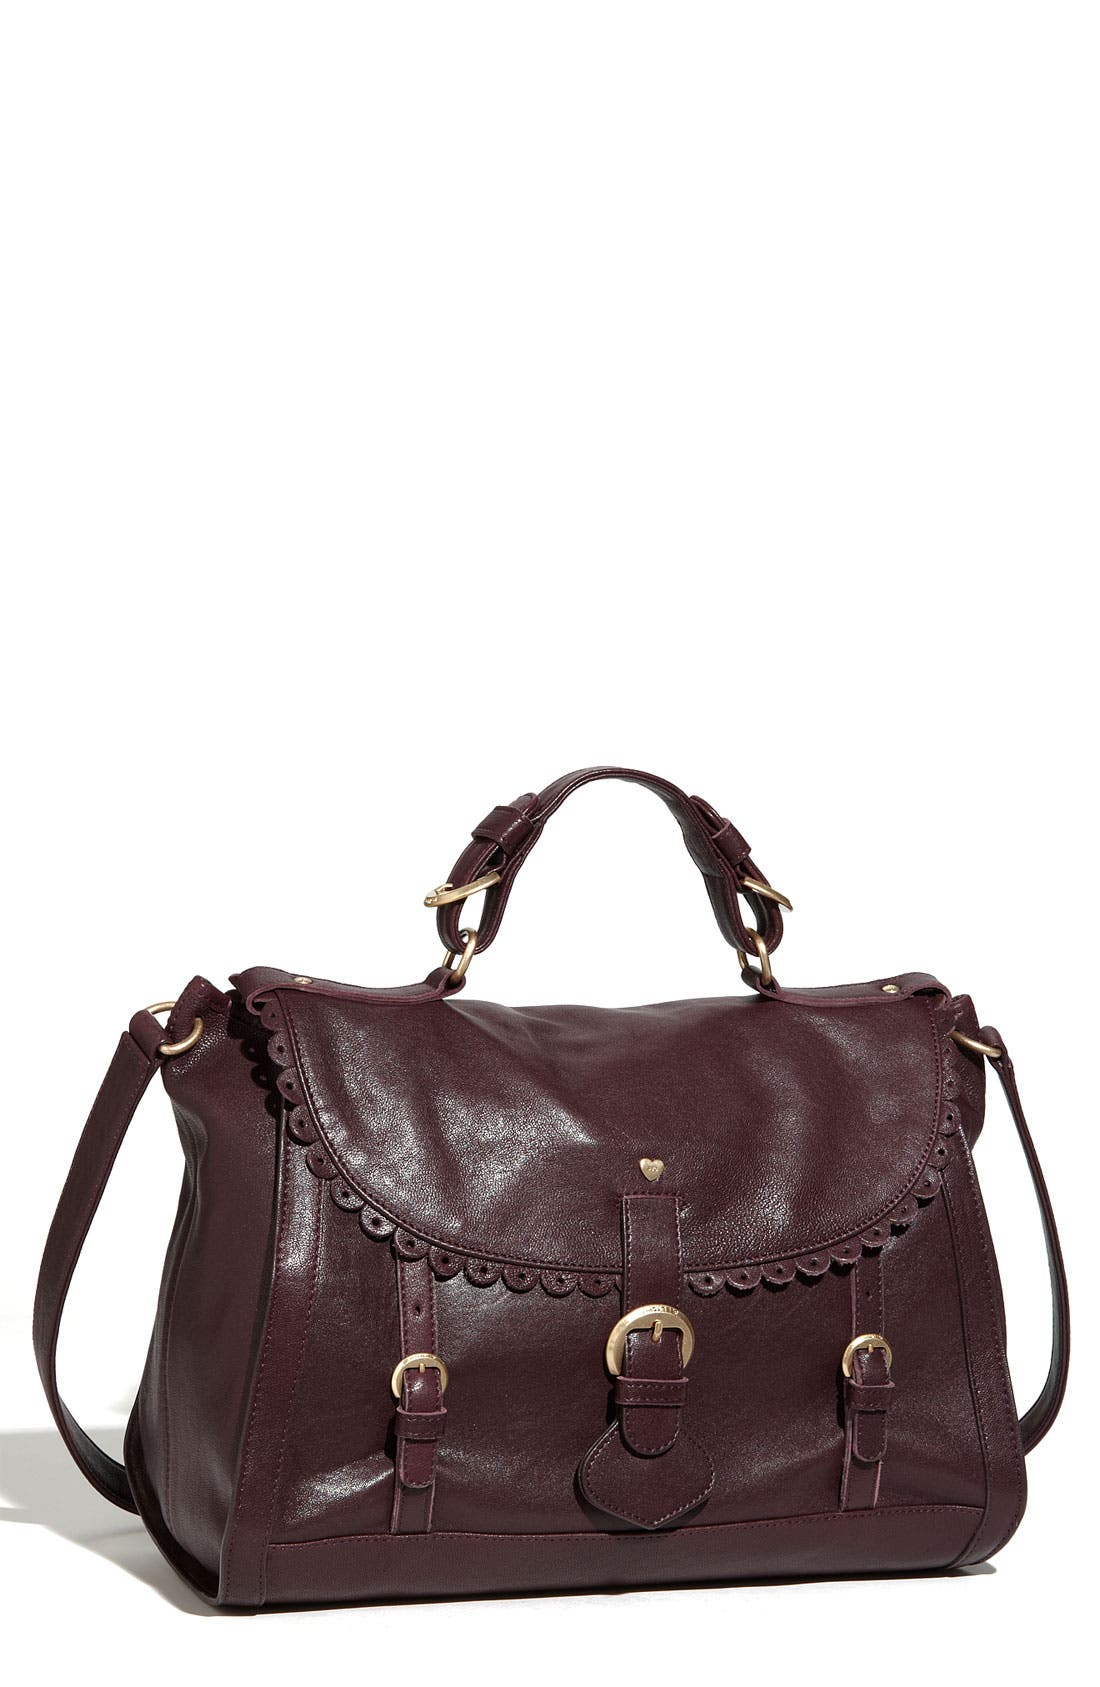 Alternate Image 1 Selected - See By Chloé 'Poya Vintage - Large' Leather Satchel